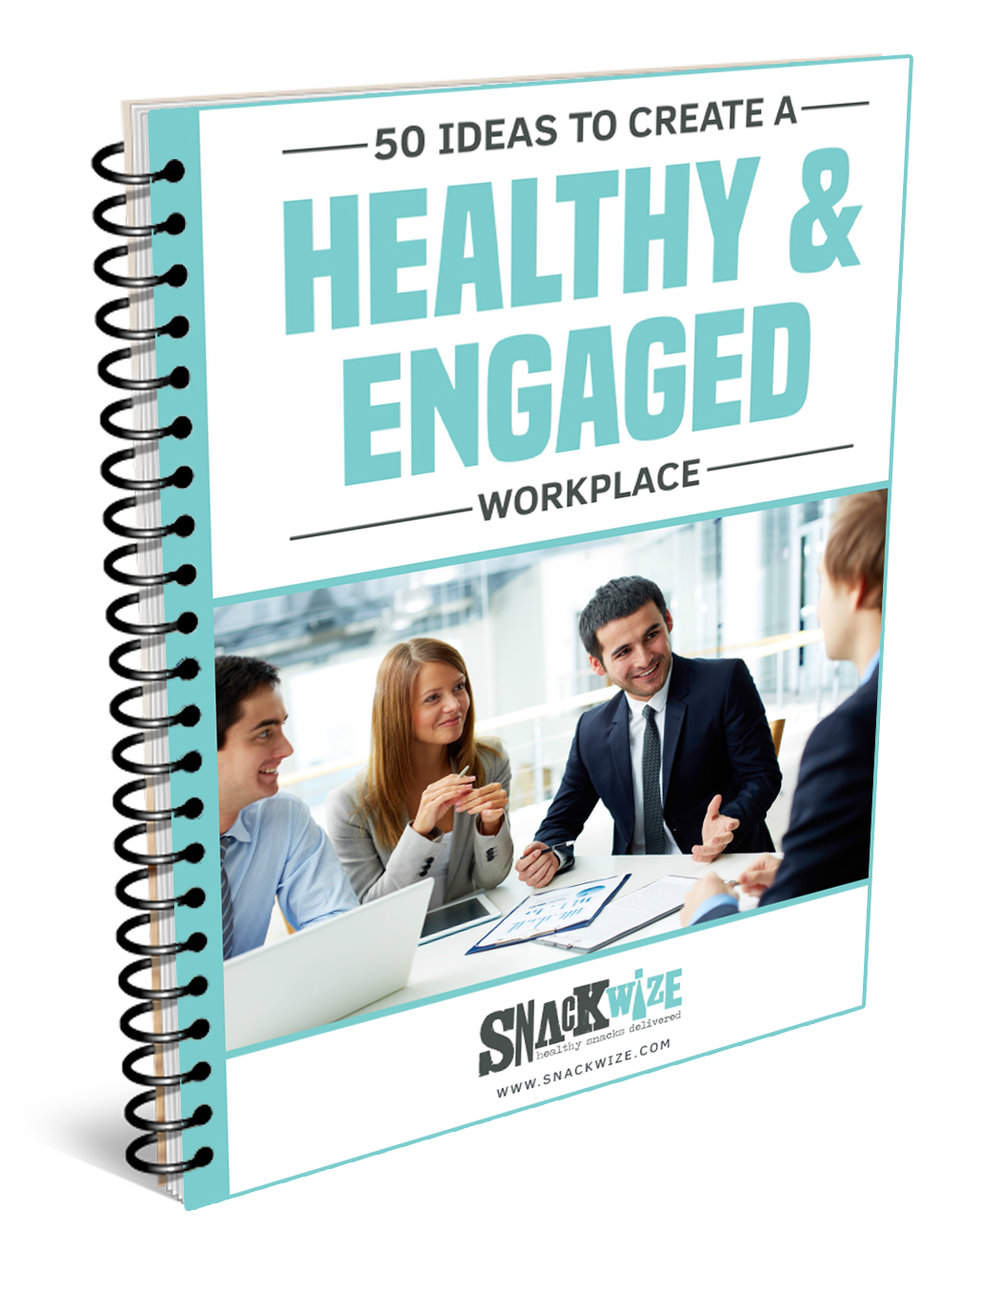 50 IDEAS TO CREATE A HEALTHY & ENGAGED WORKPLACE